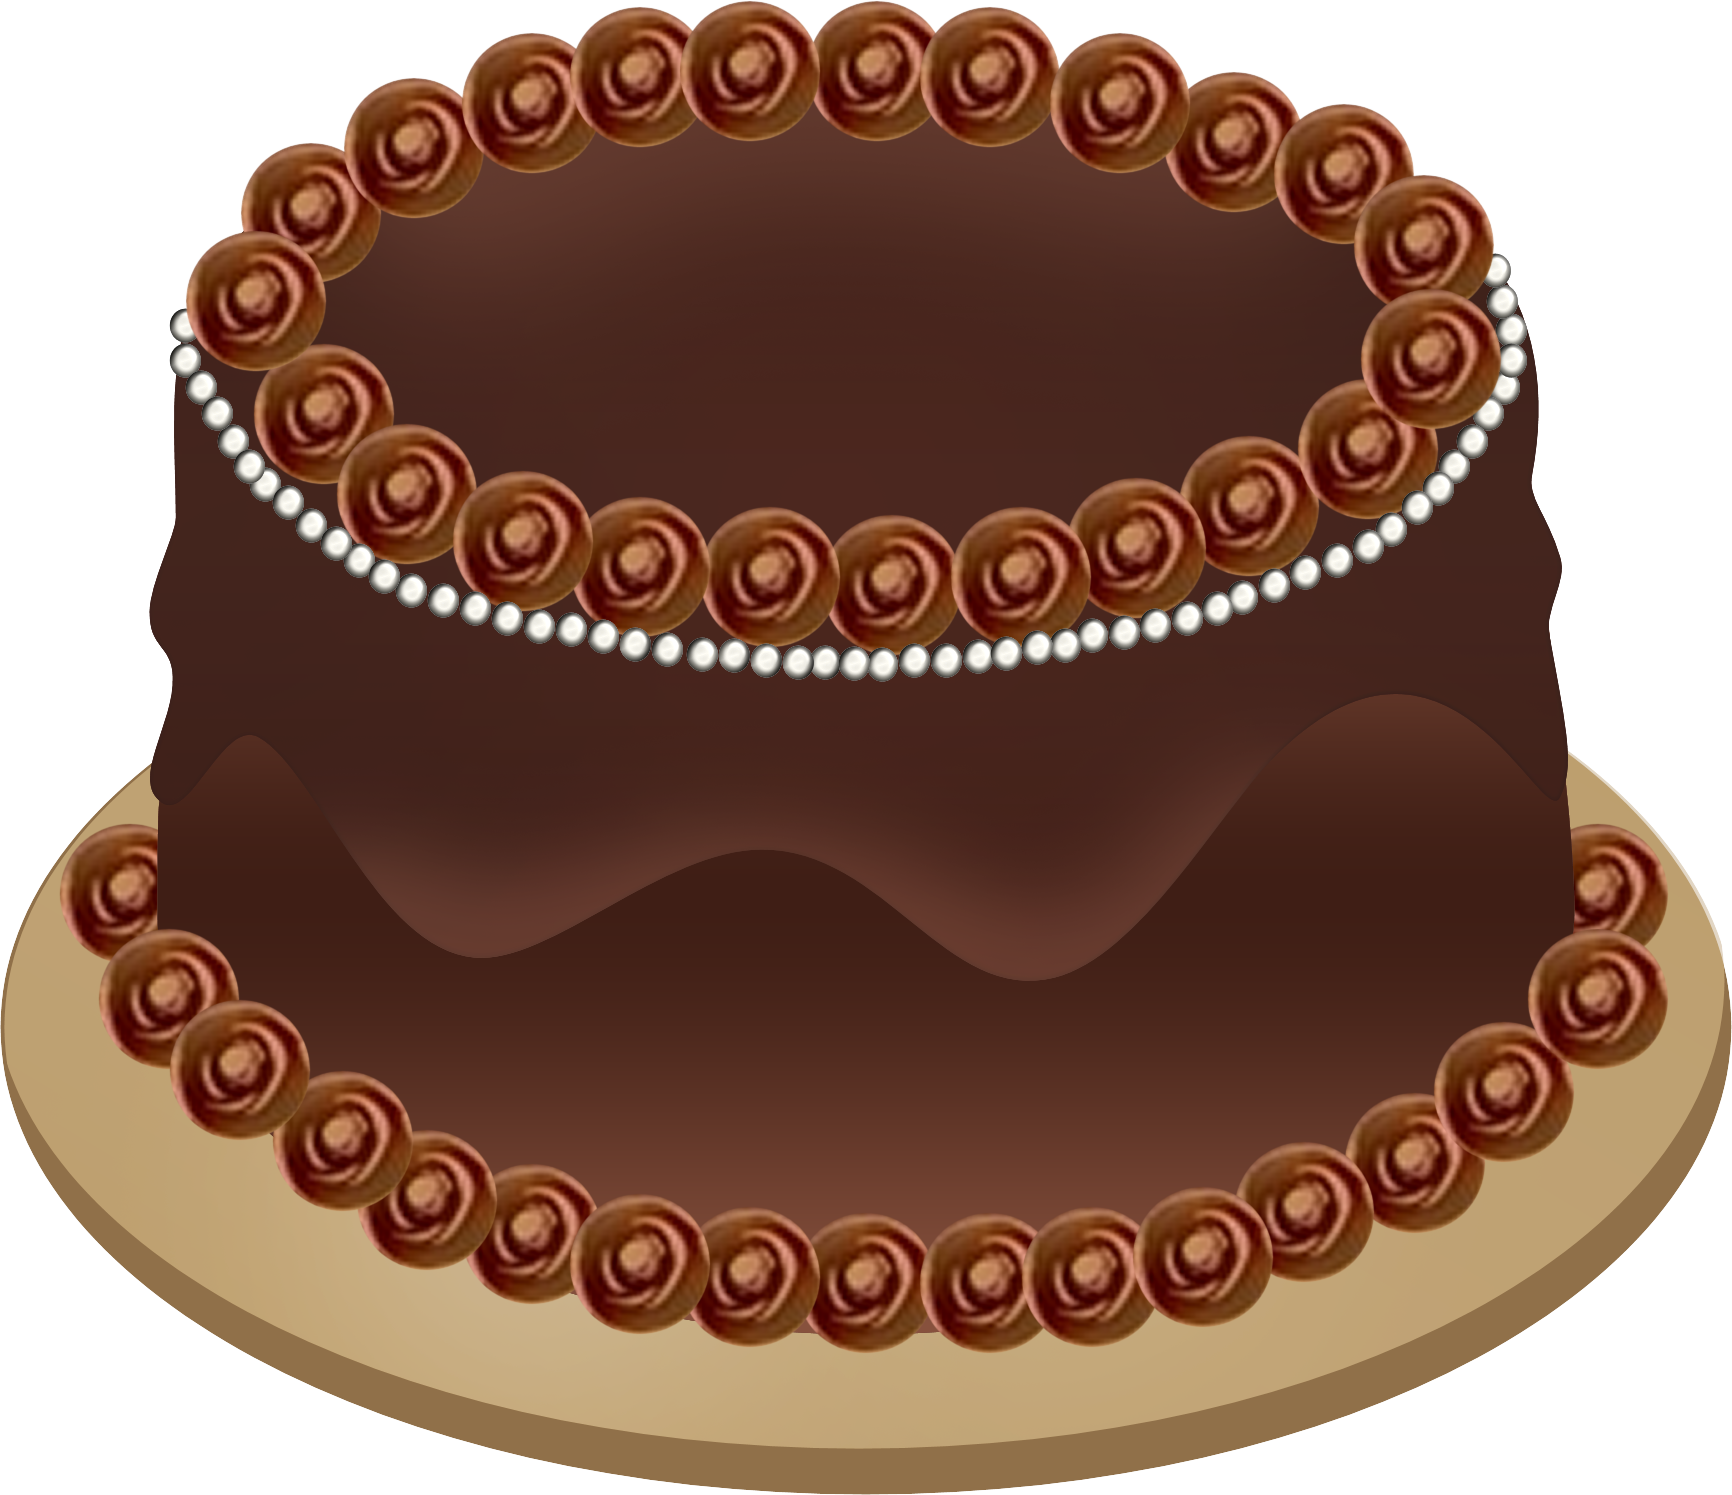 Chocolate birthday cake clipart svg royalty free Chocolate Cake Clipart & Chocolate Cake Clip Art Images ... svg royalty free